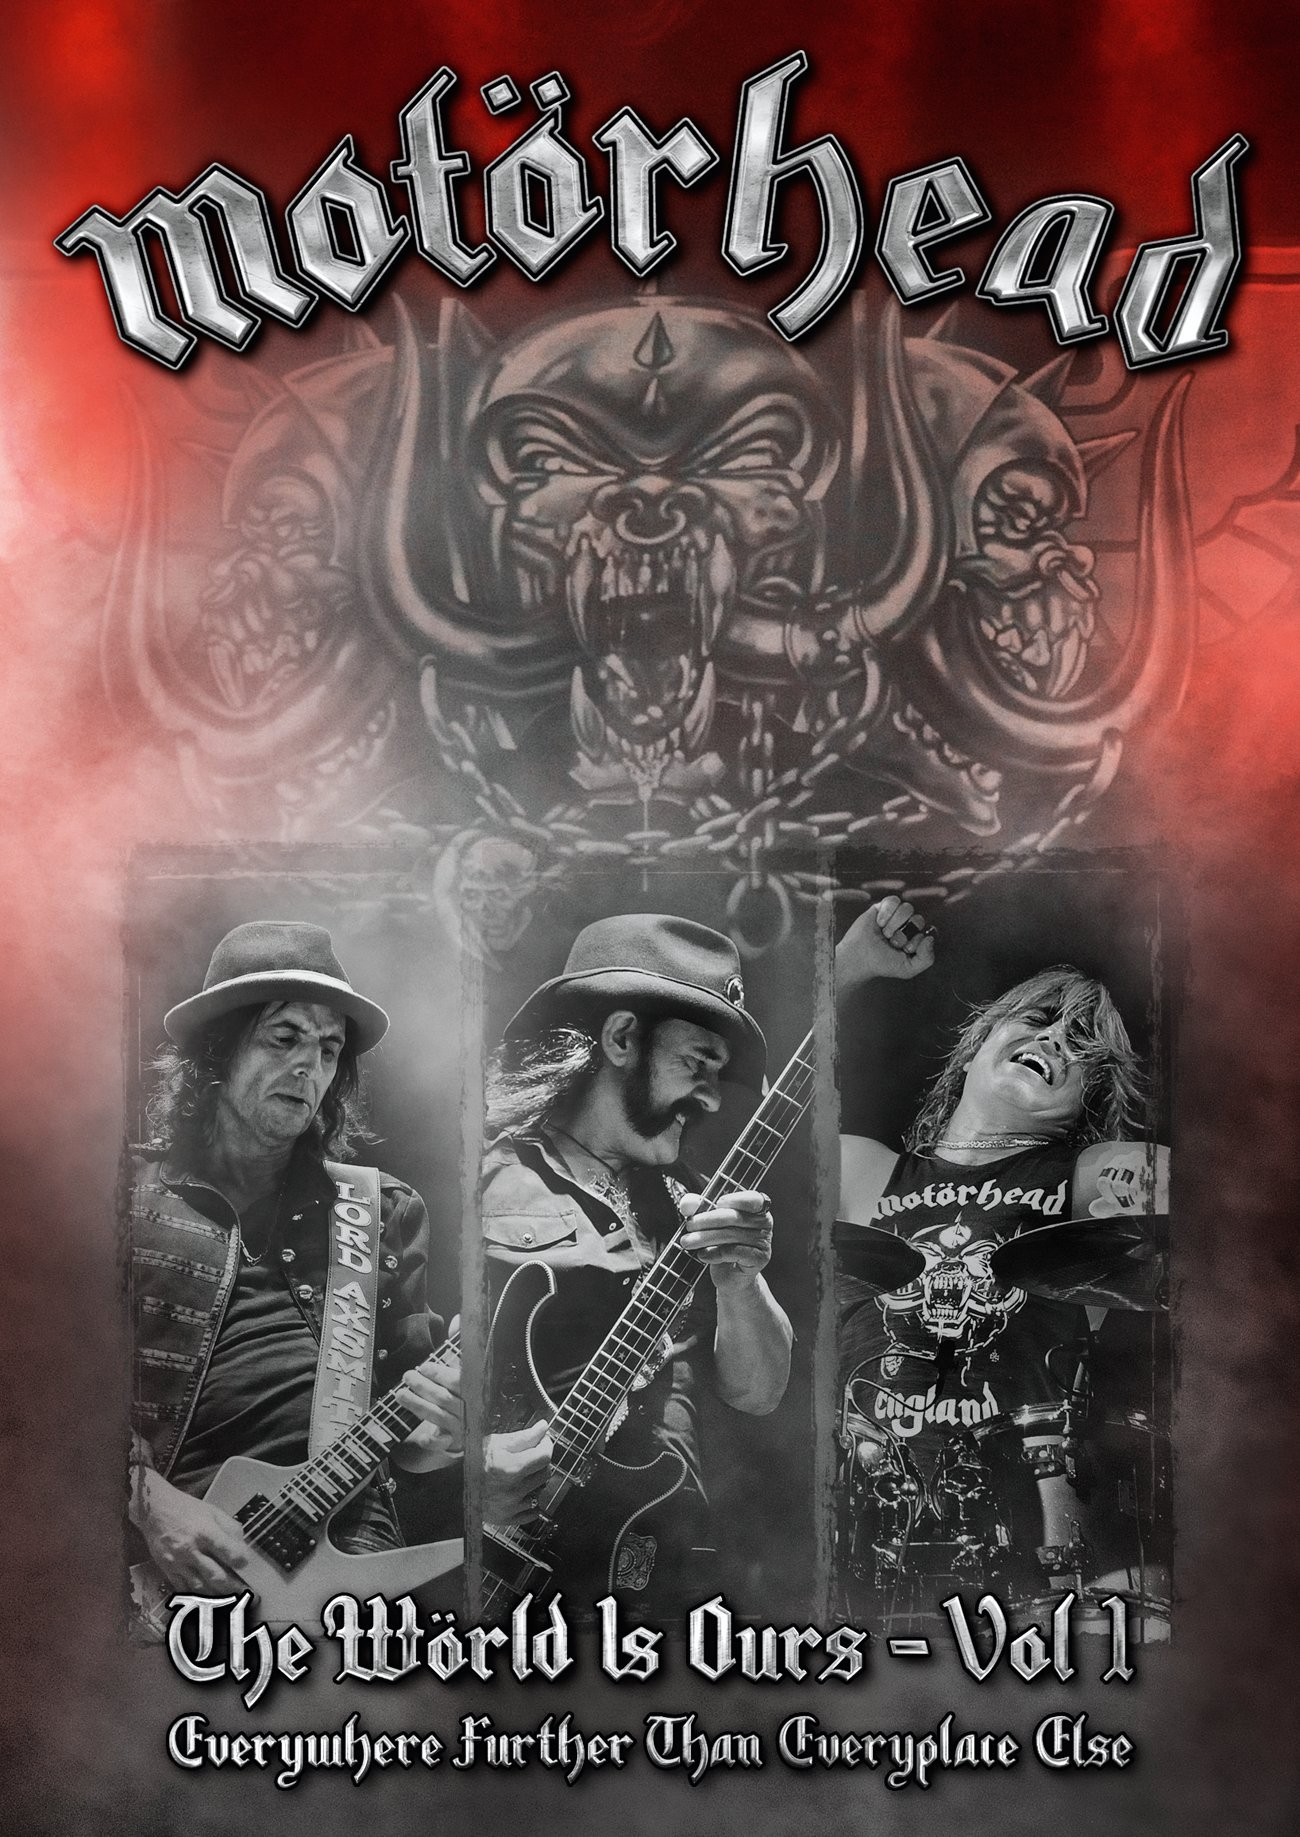 Blu-ray : Motorhead - The World Is Ours: Volume 1: Everywhere Further Than Everyplace Else (Blu-ray)